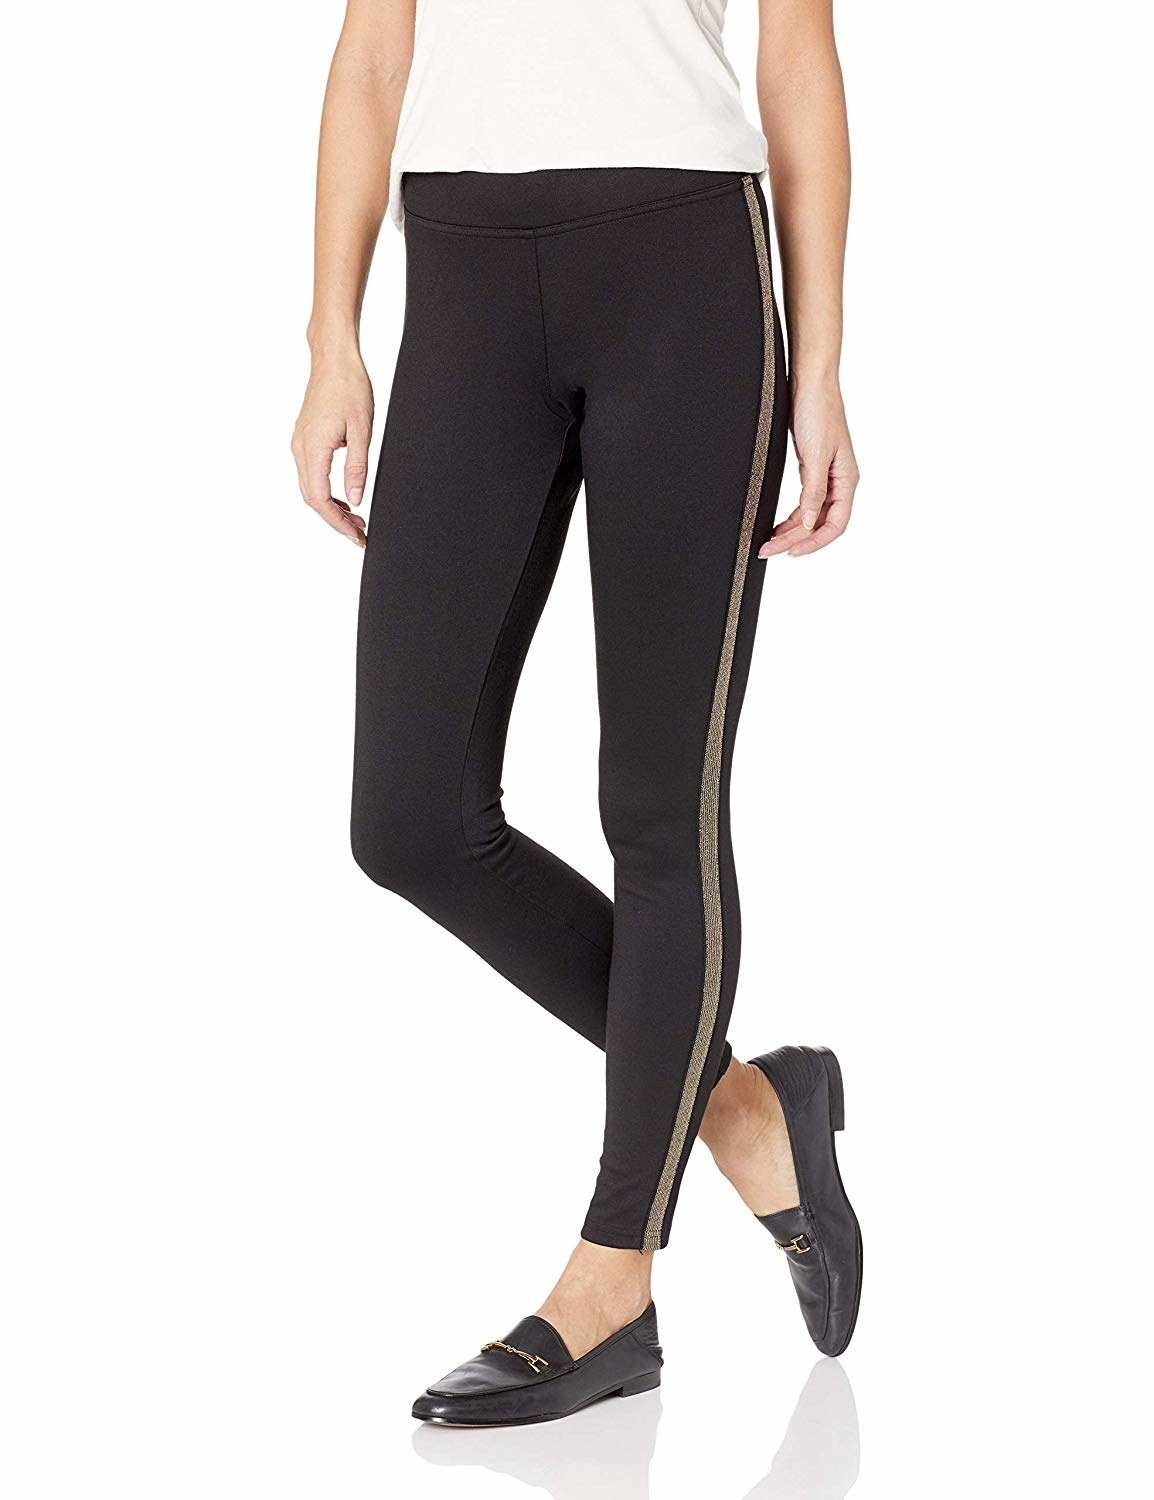 George Dark Bue Crop Length Leggings Women's Clothing Size 20 Bringing More Convenience To The People In Their Daily Life Clothing, Shoes & Accessories